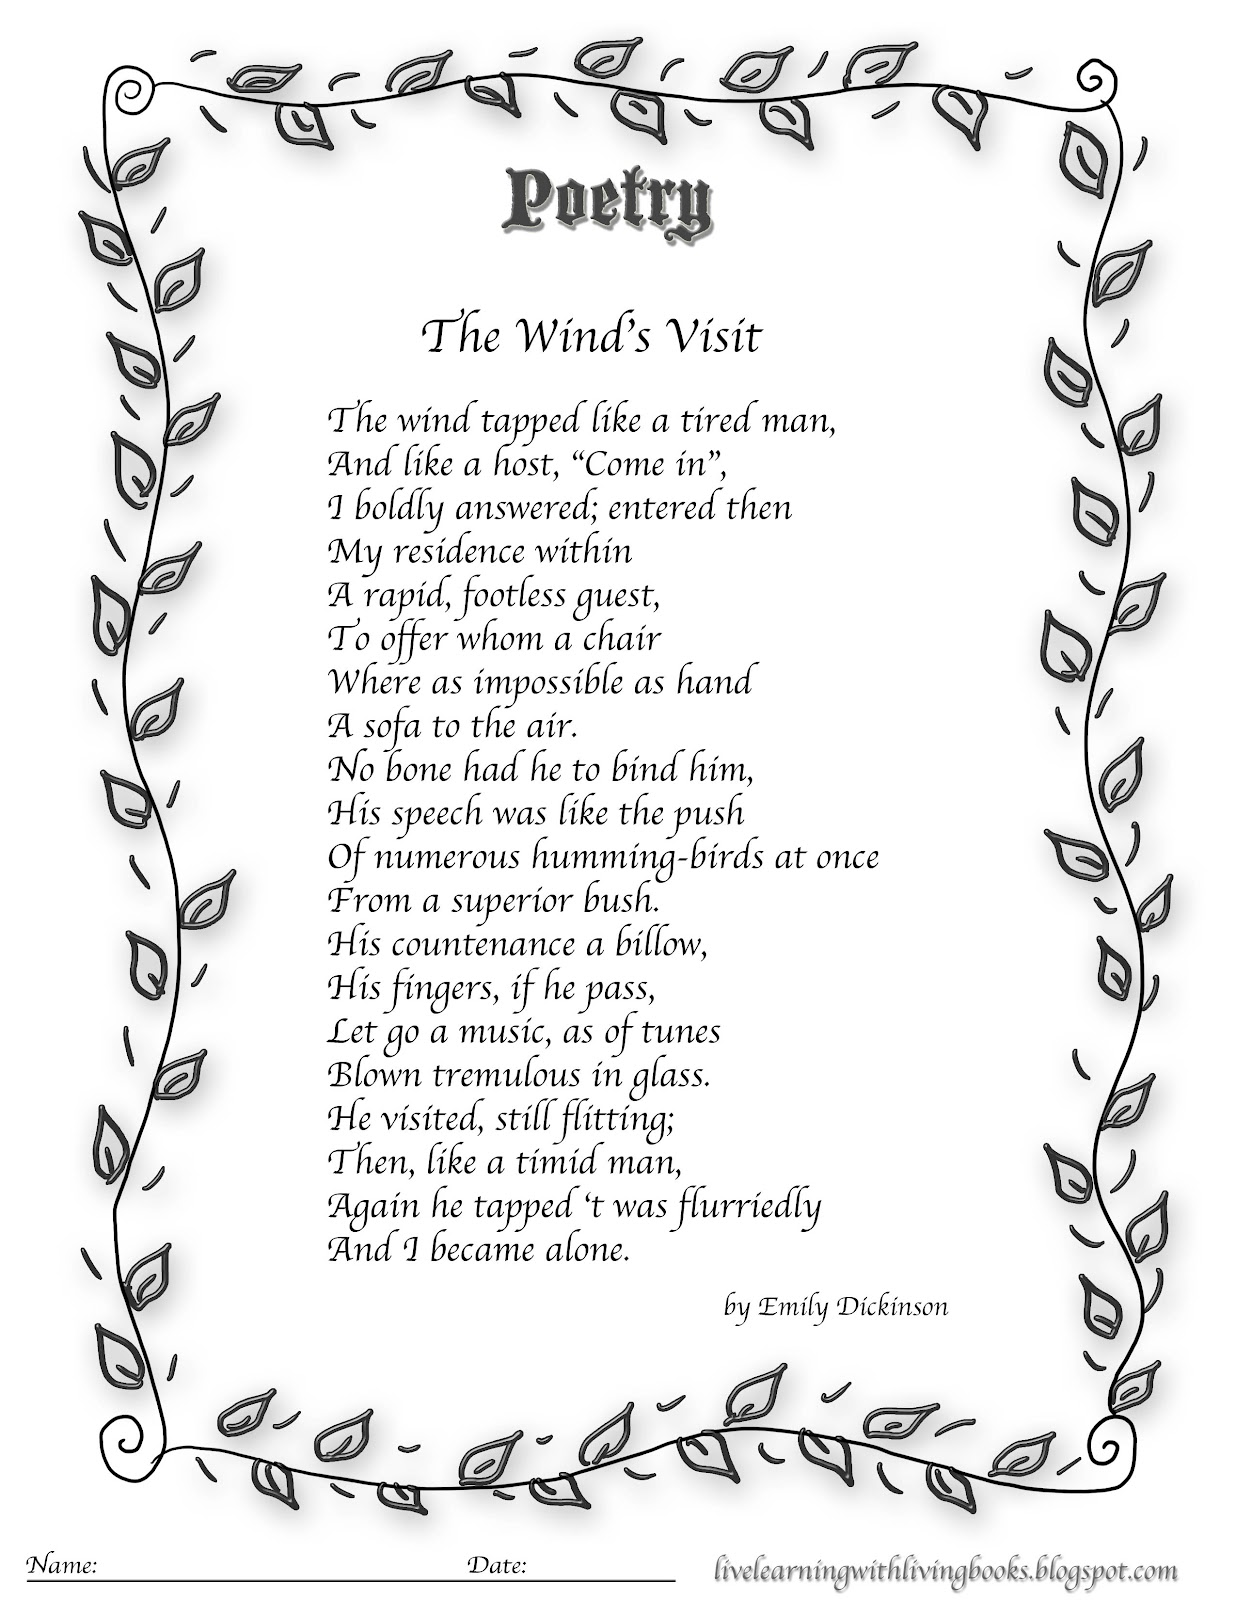 emily dickinson analysis of poem 764 Reflections on dickinson 598 that i'd share a dickinson poem and some of my i love your concise and articulate analysis here my mom named me after emily.